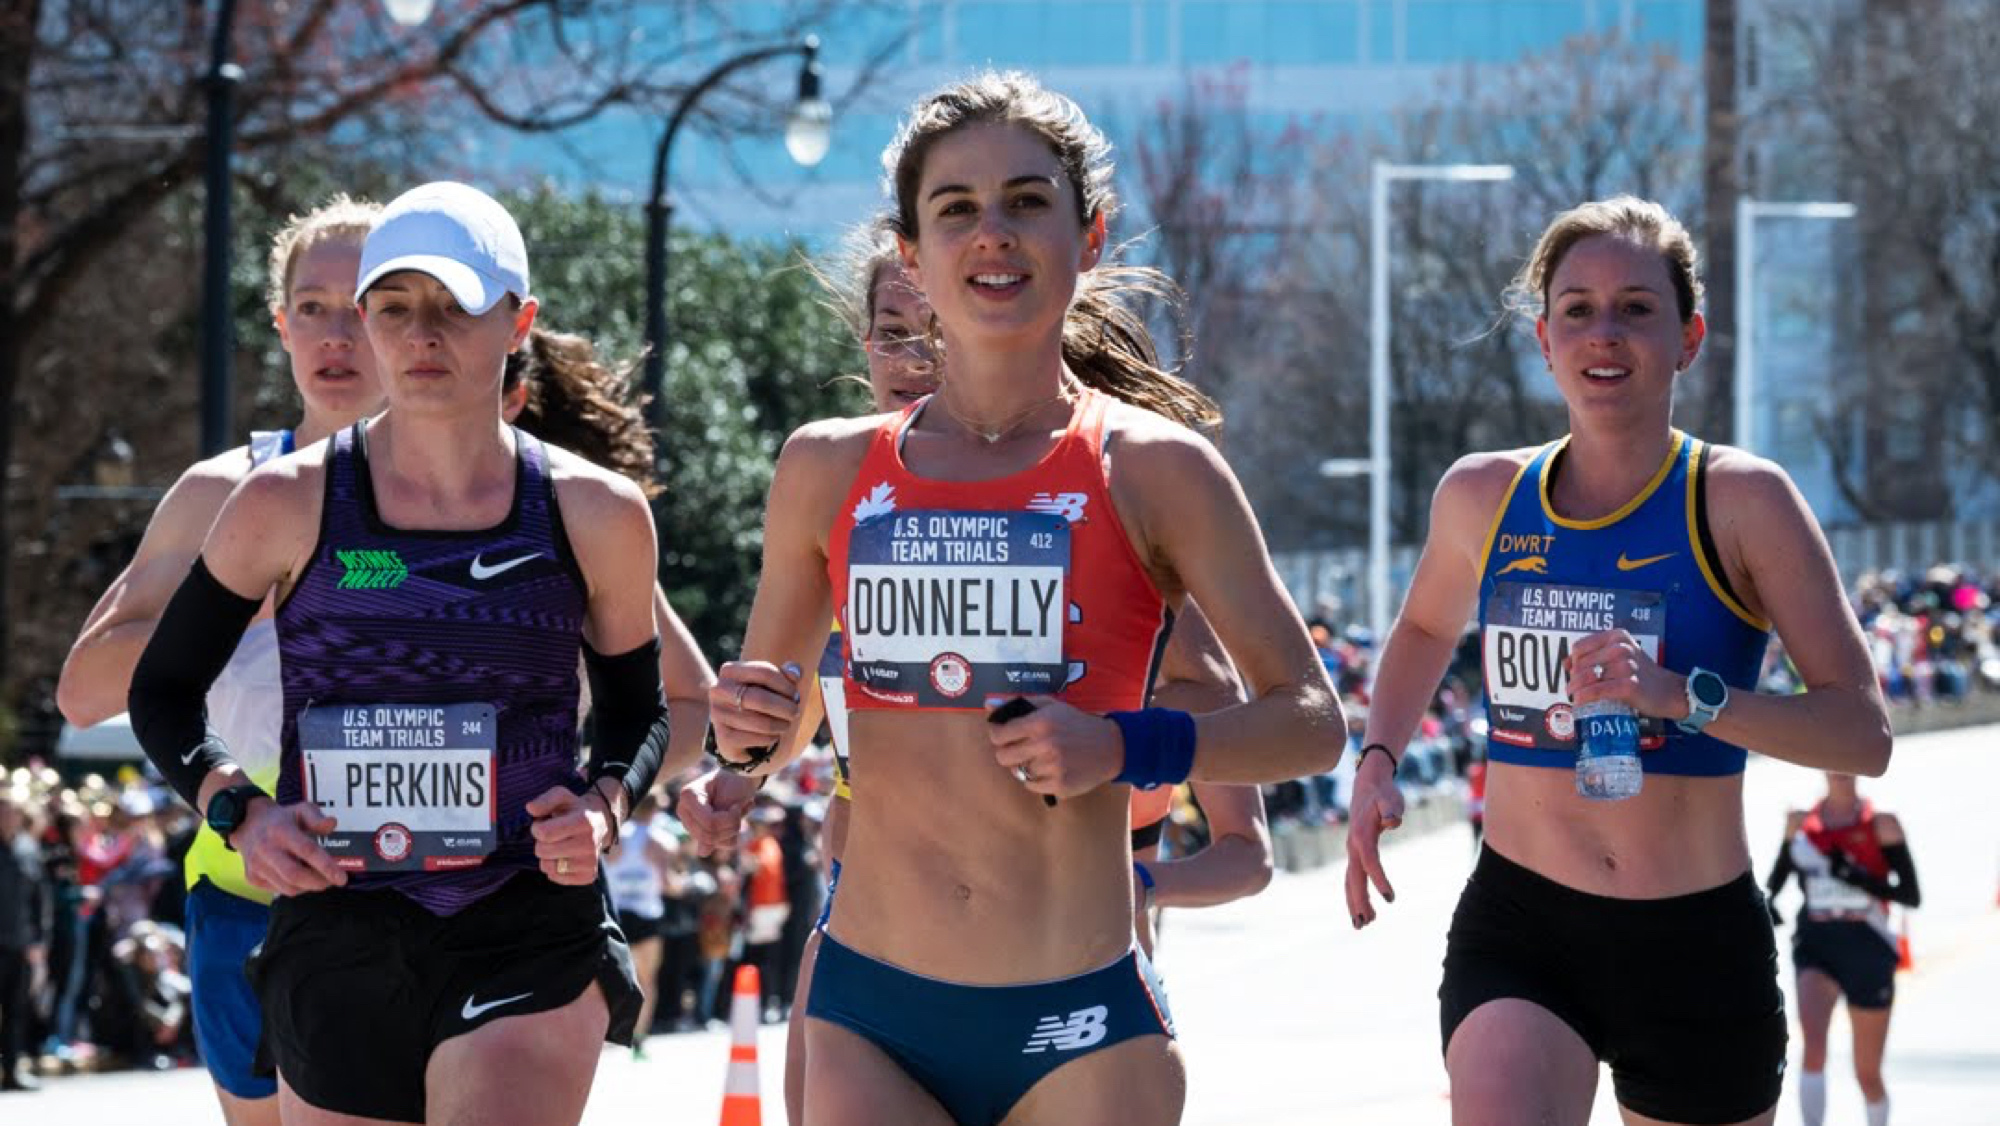 jenny donnelly 2020 us olympic marathon trials